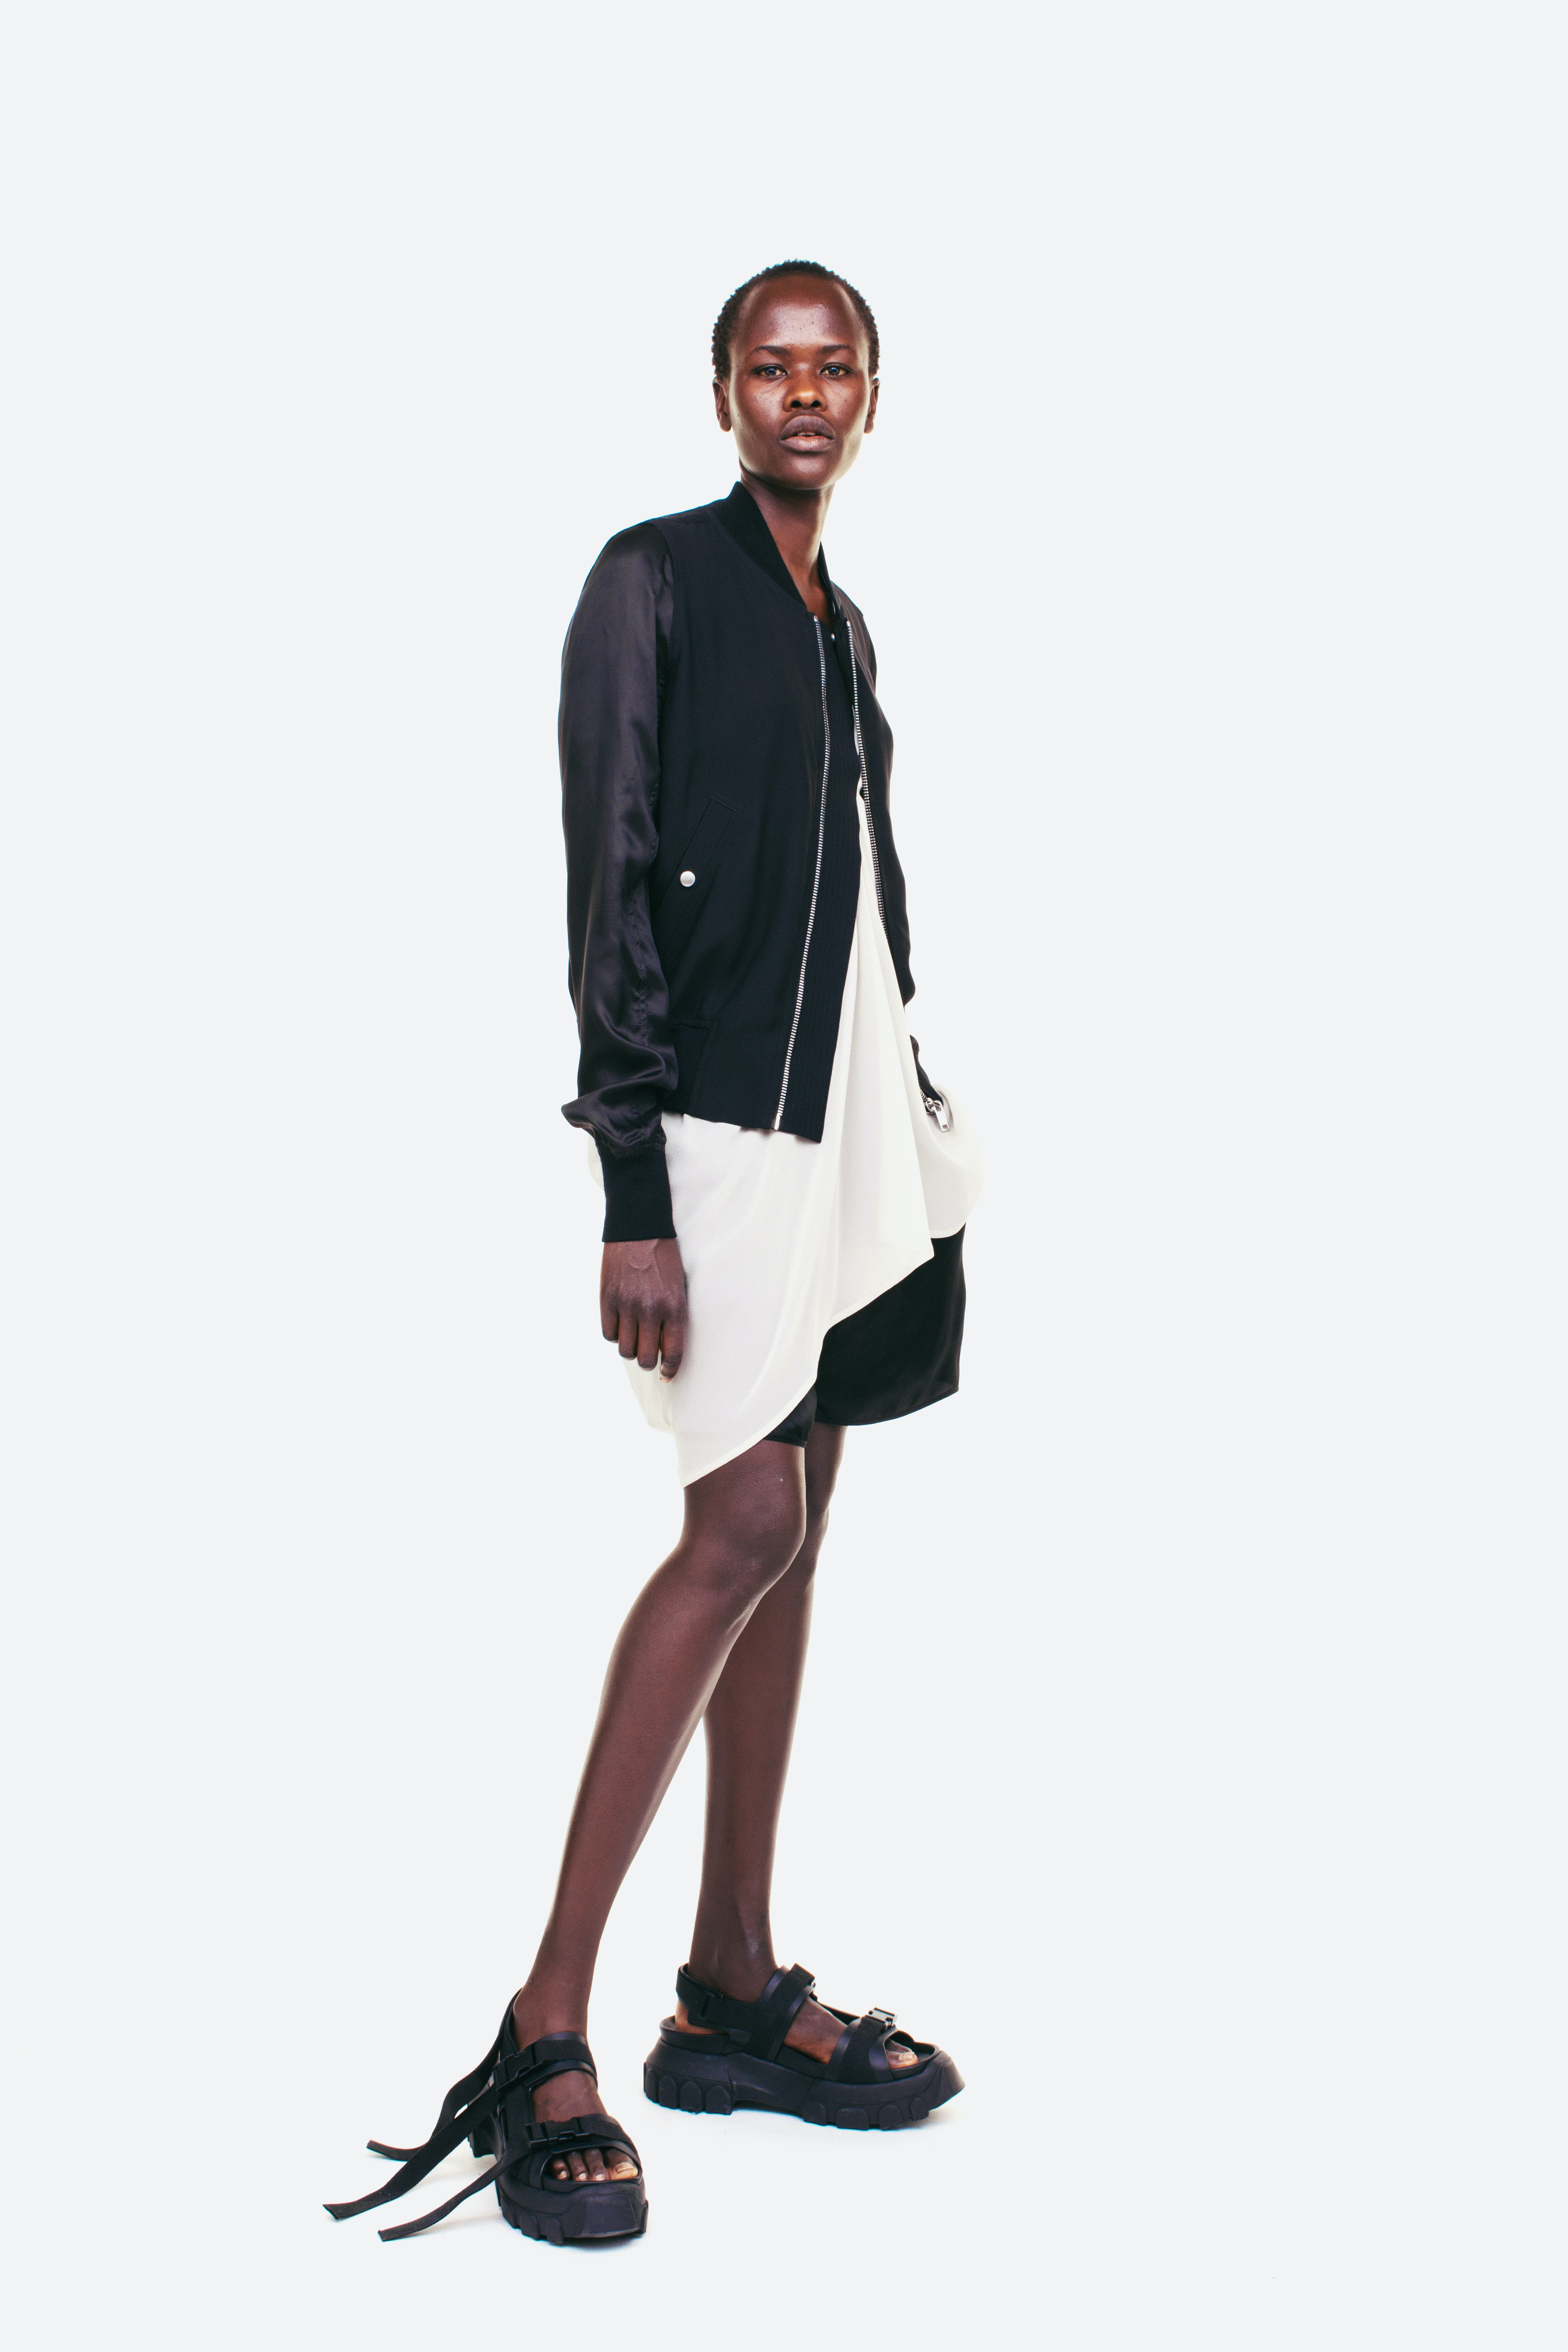 Rick Owens Campaign Bomber Silk Sleeve Jacket In Black Loose Fit Asymmetrical T Shirt in White Loose Fit Shorts in Black Long Strap Sandals in Black Womens SS19 Pre Collection